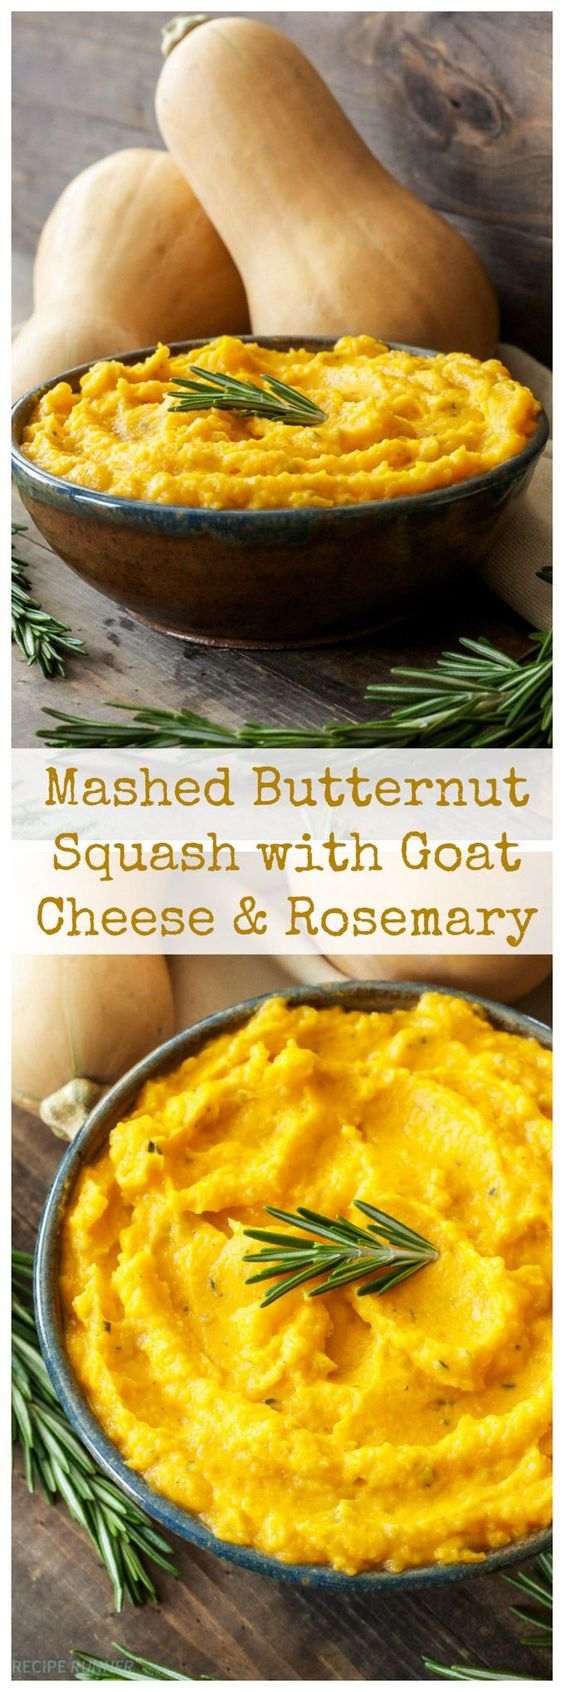 Mashed Butternut Squash with Goat Cheese and Rosemary   Goat cheese ...